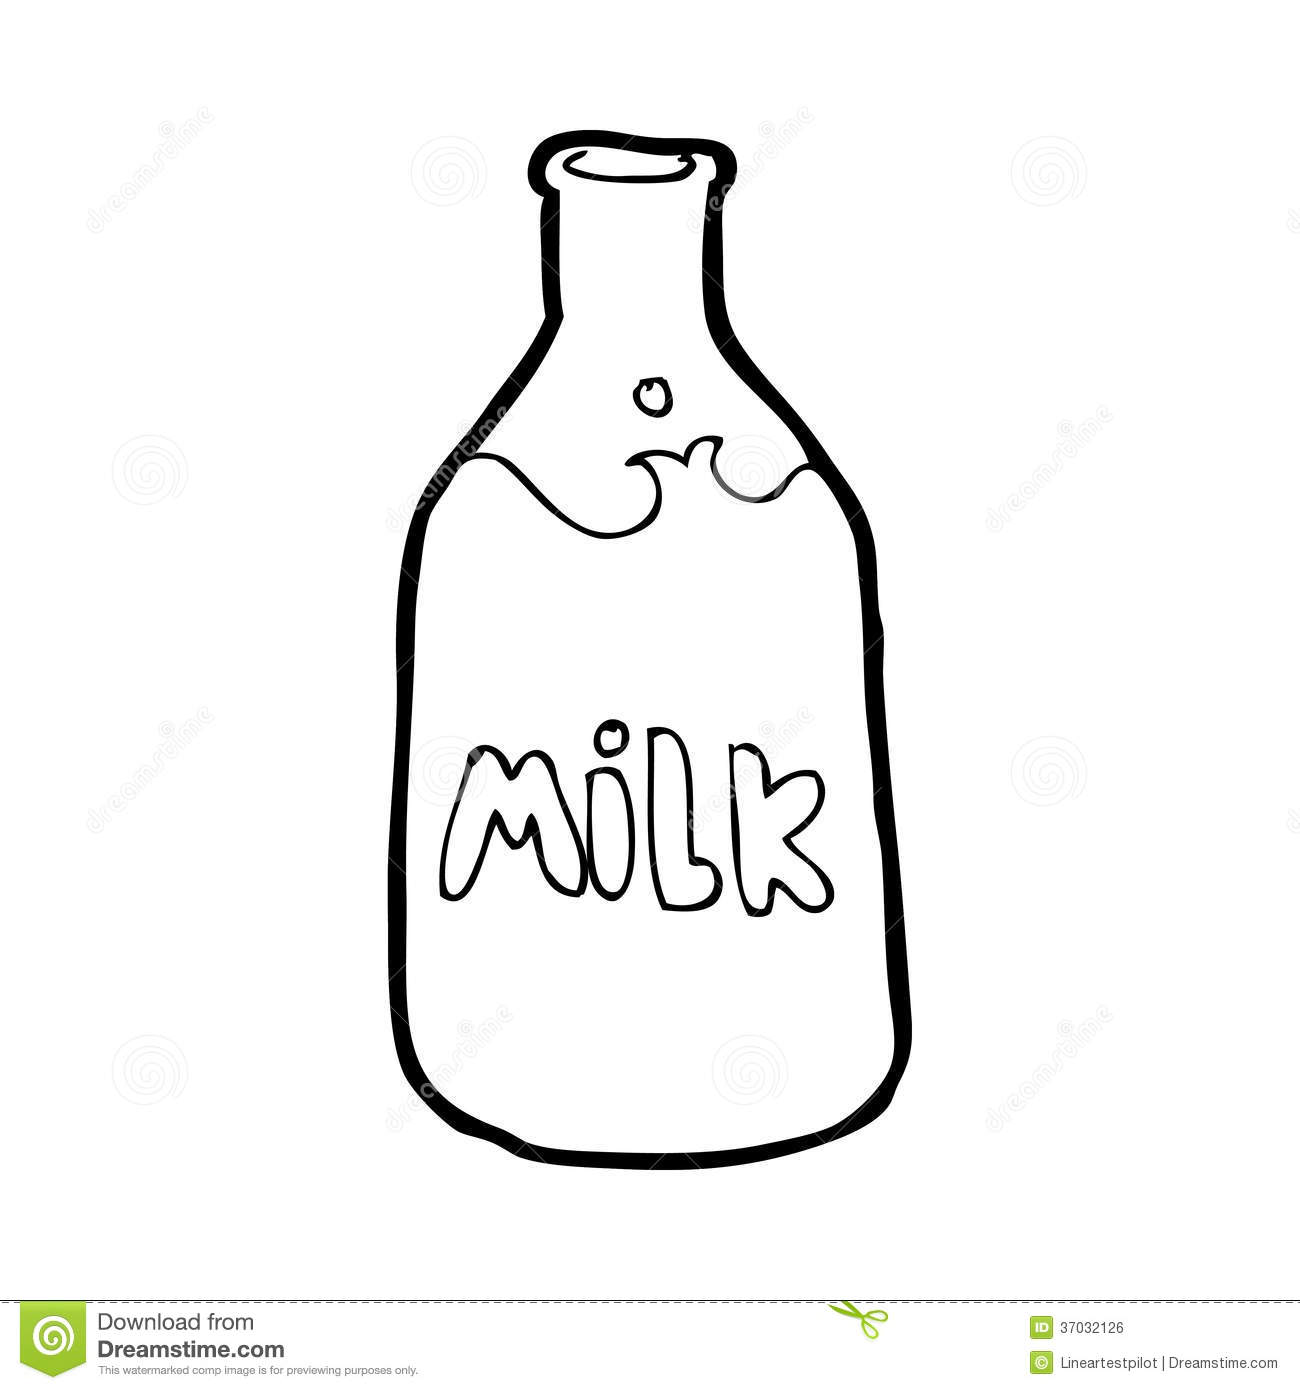 Glass milk bottle clipart.